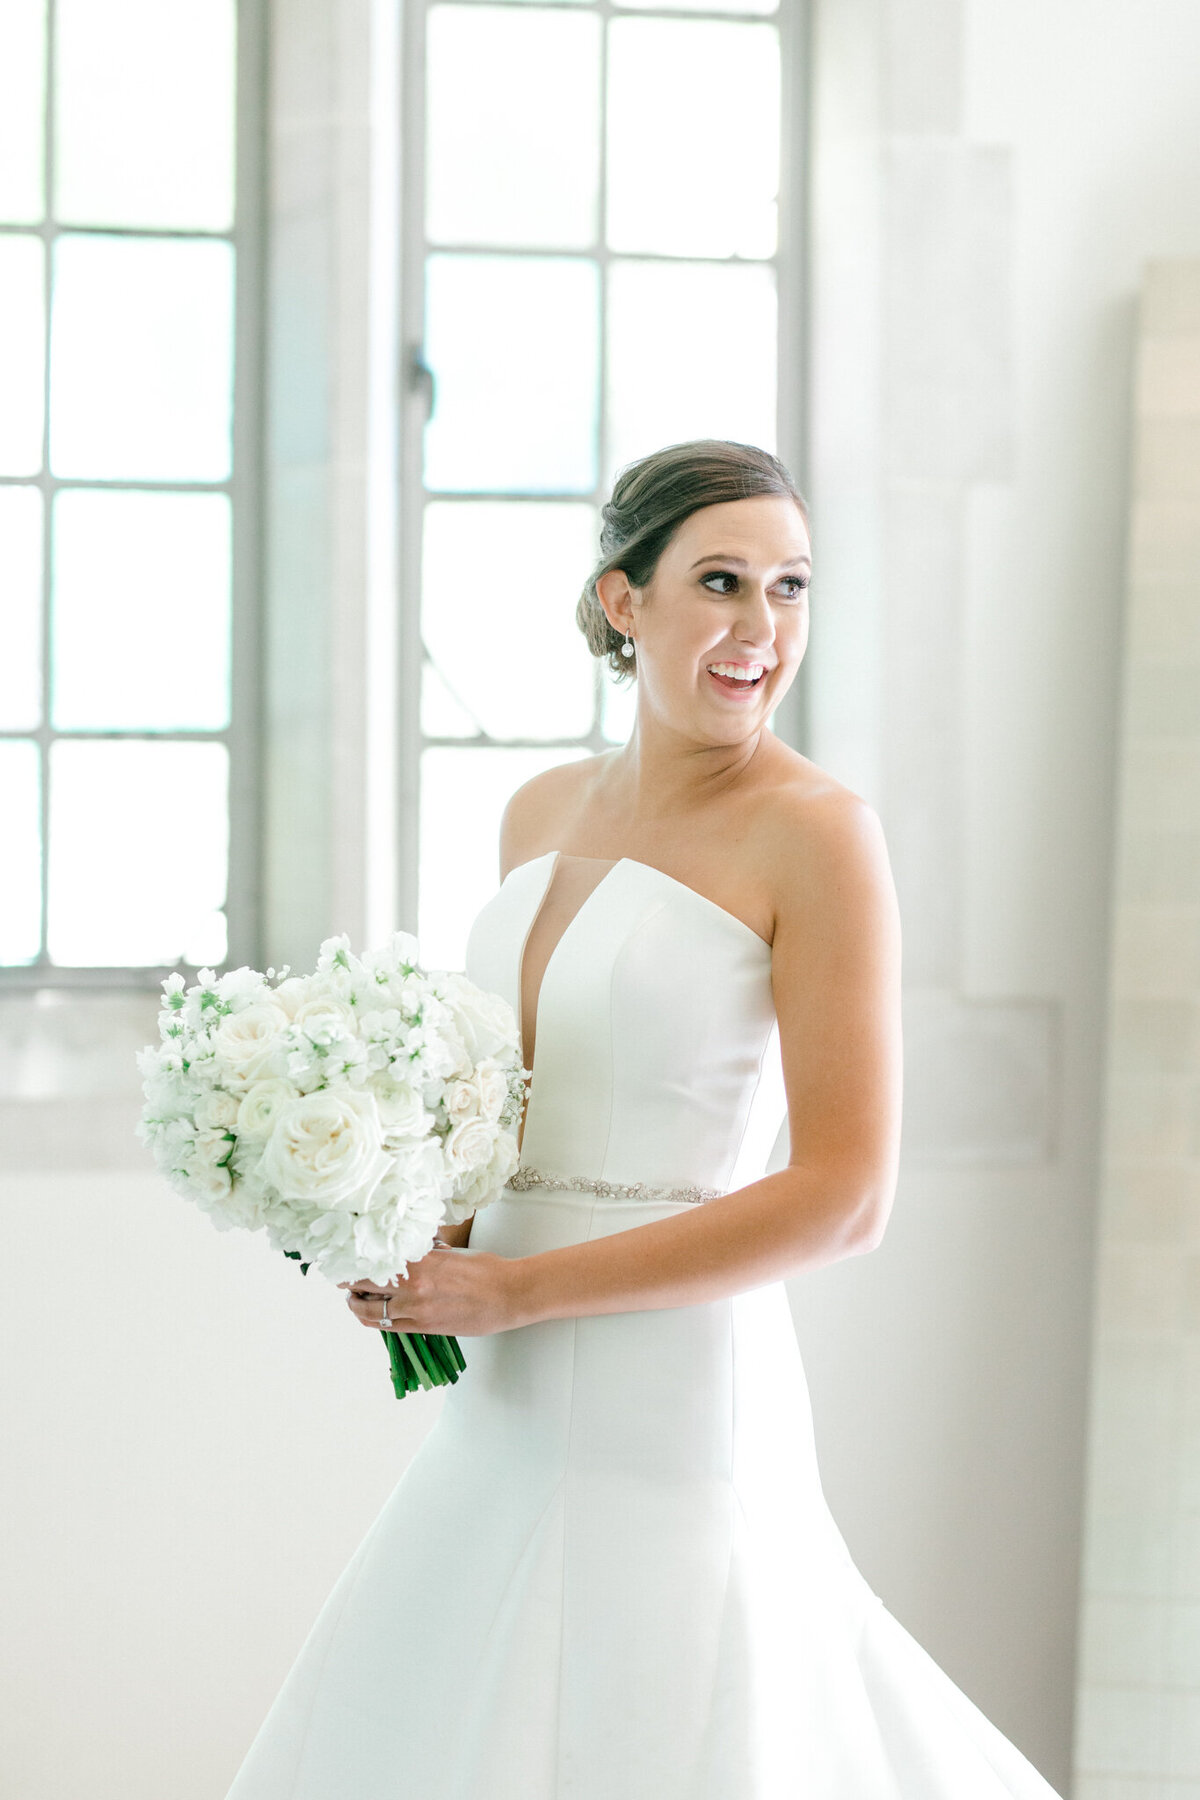 Wedding at the Crescent Court Hotel and Highland Park United Methodist Church in Dallas | Sami Kathryn Photography | DFW Wedding Photographer-102